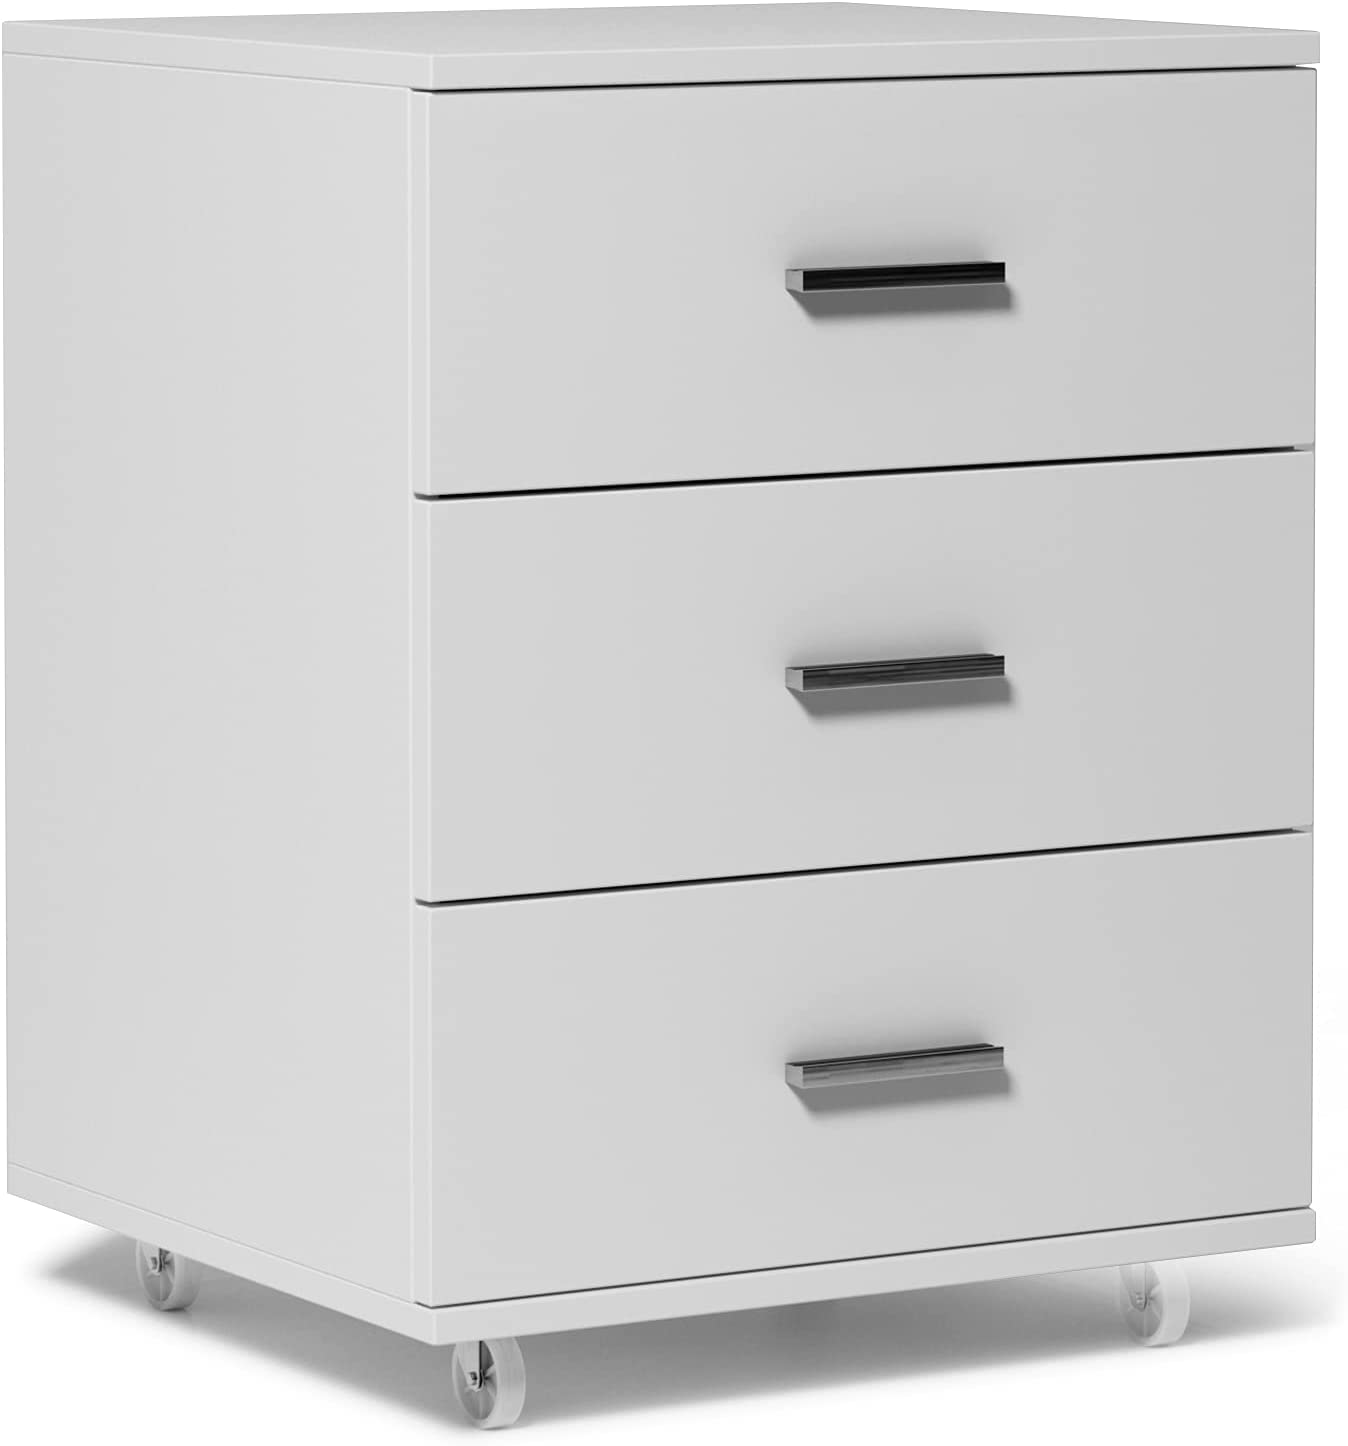 Selling and selling Soges 3 Drawer Mobile File Genuine Free Shipping Modern Cabinet Wood Filing Ro